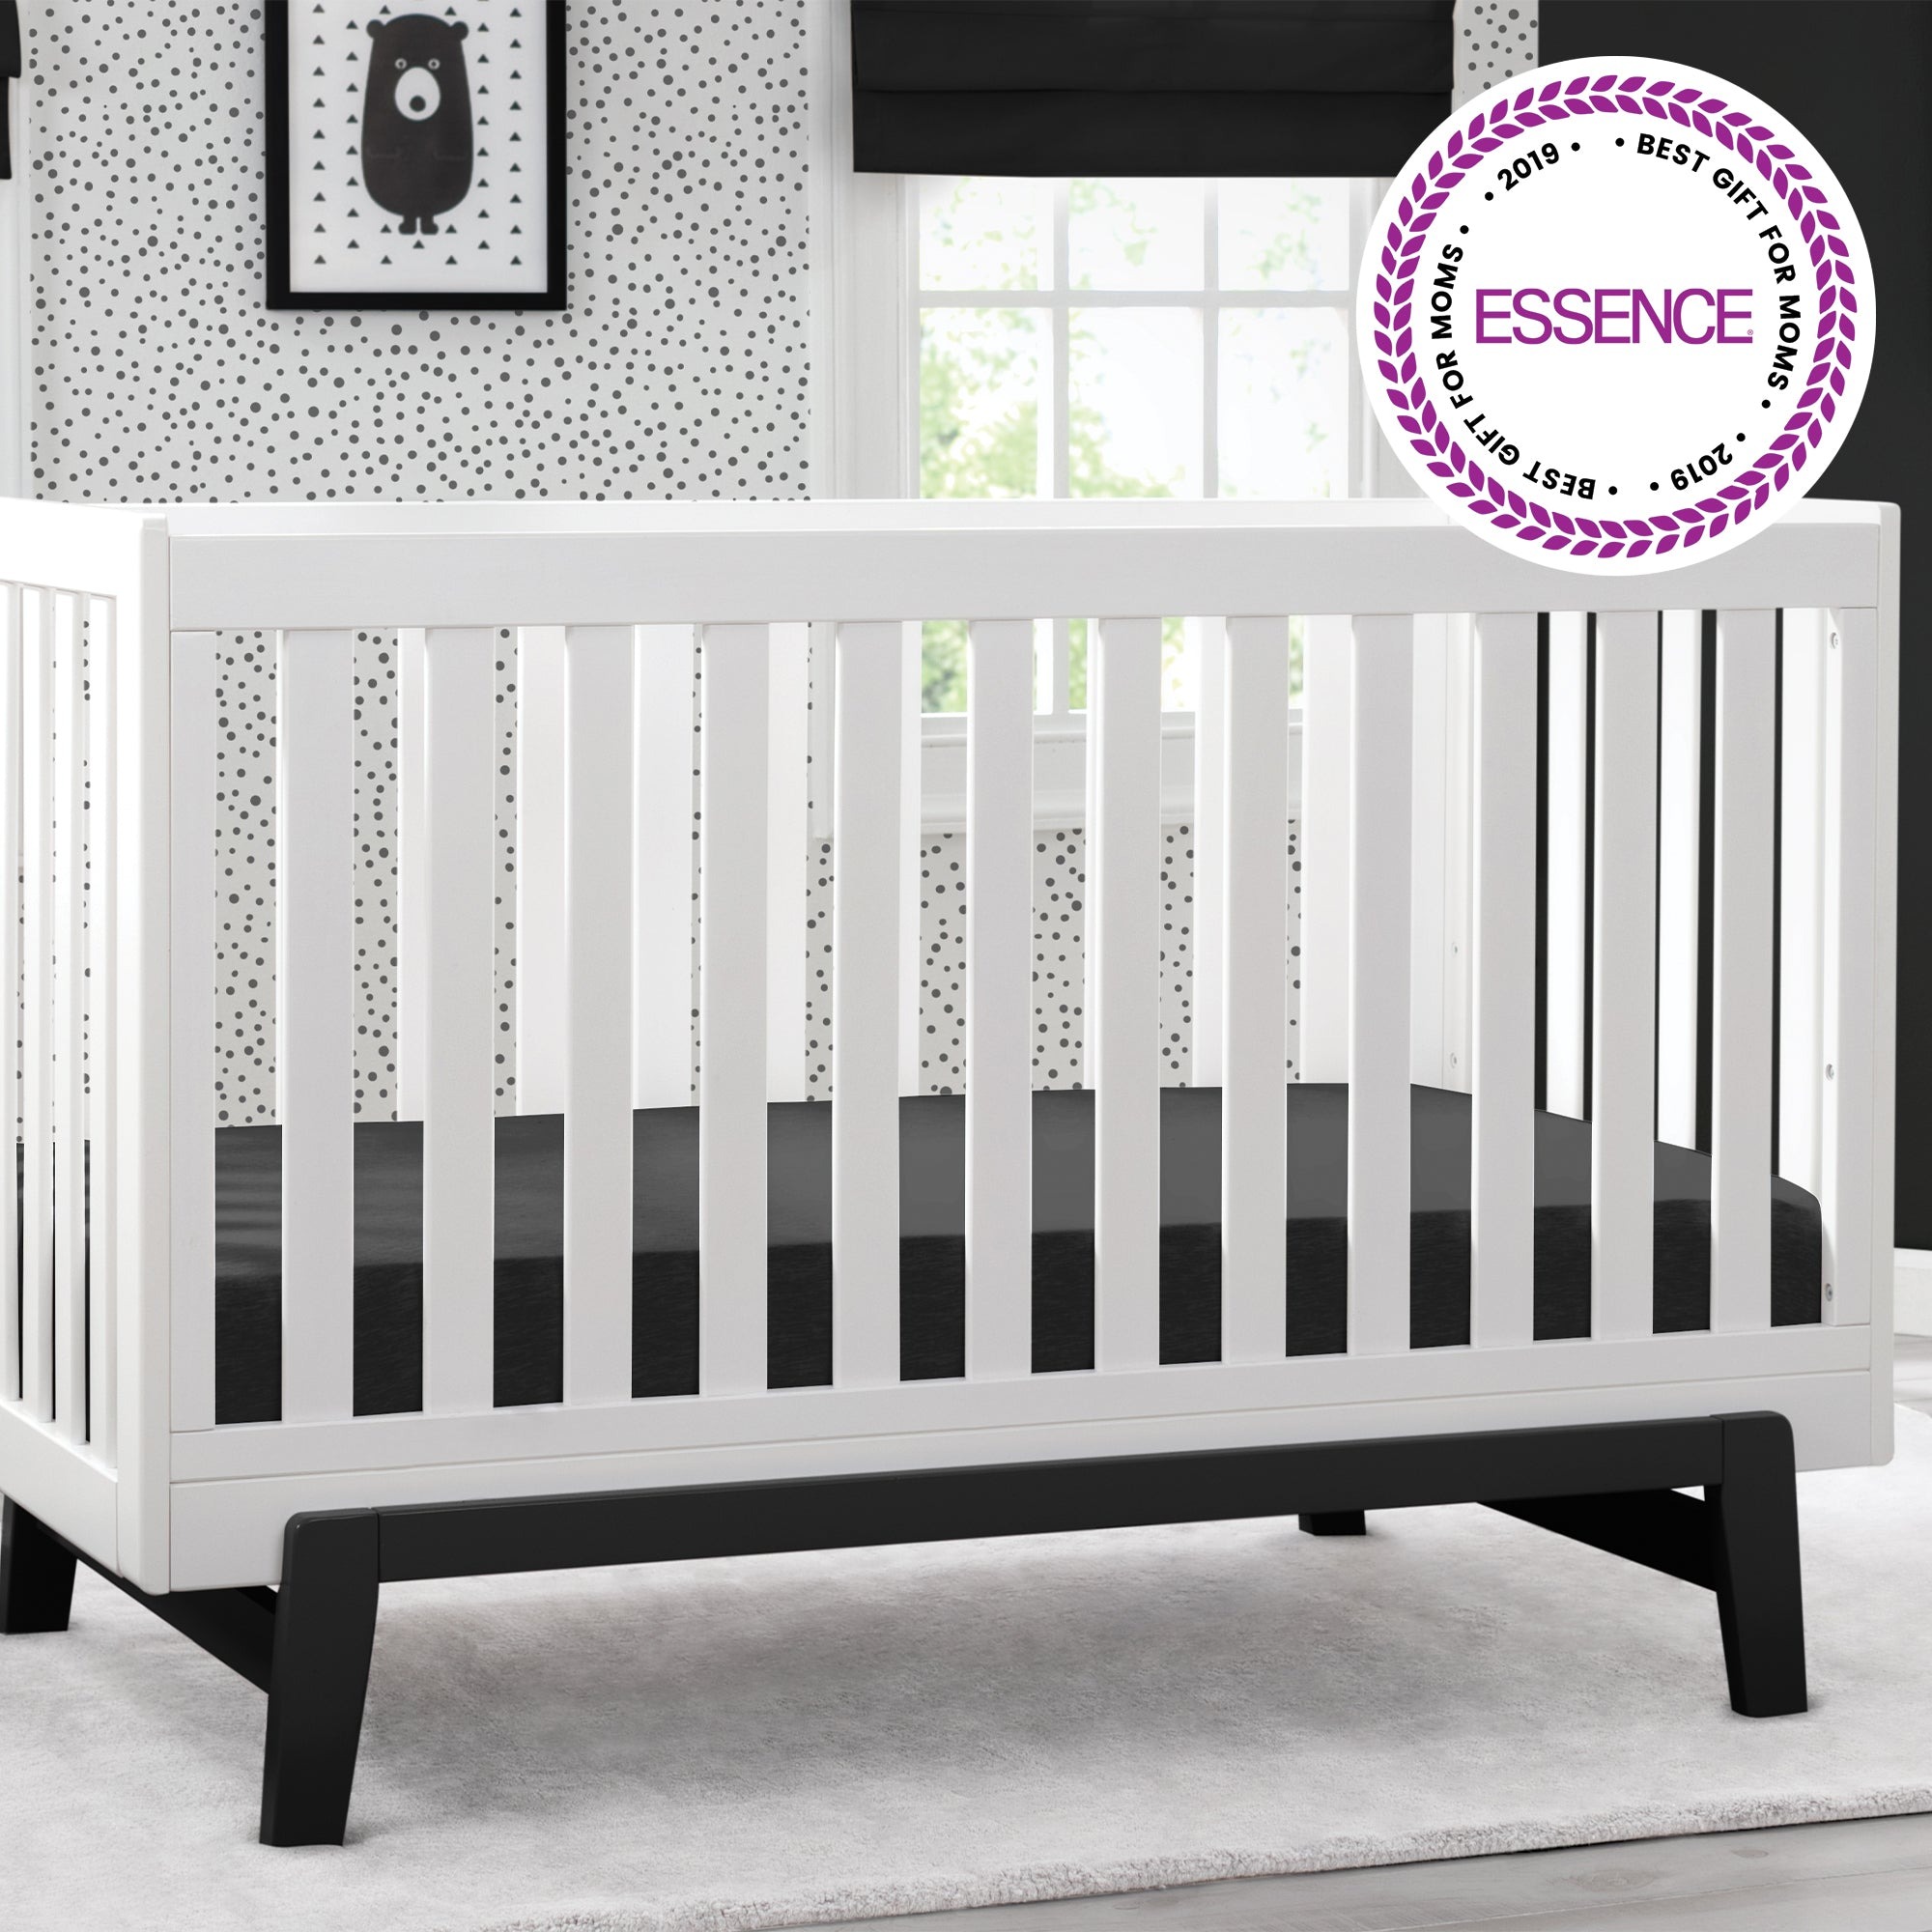 Aster 3 in 1 Crib Bianca White with Ebony 149